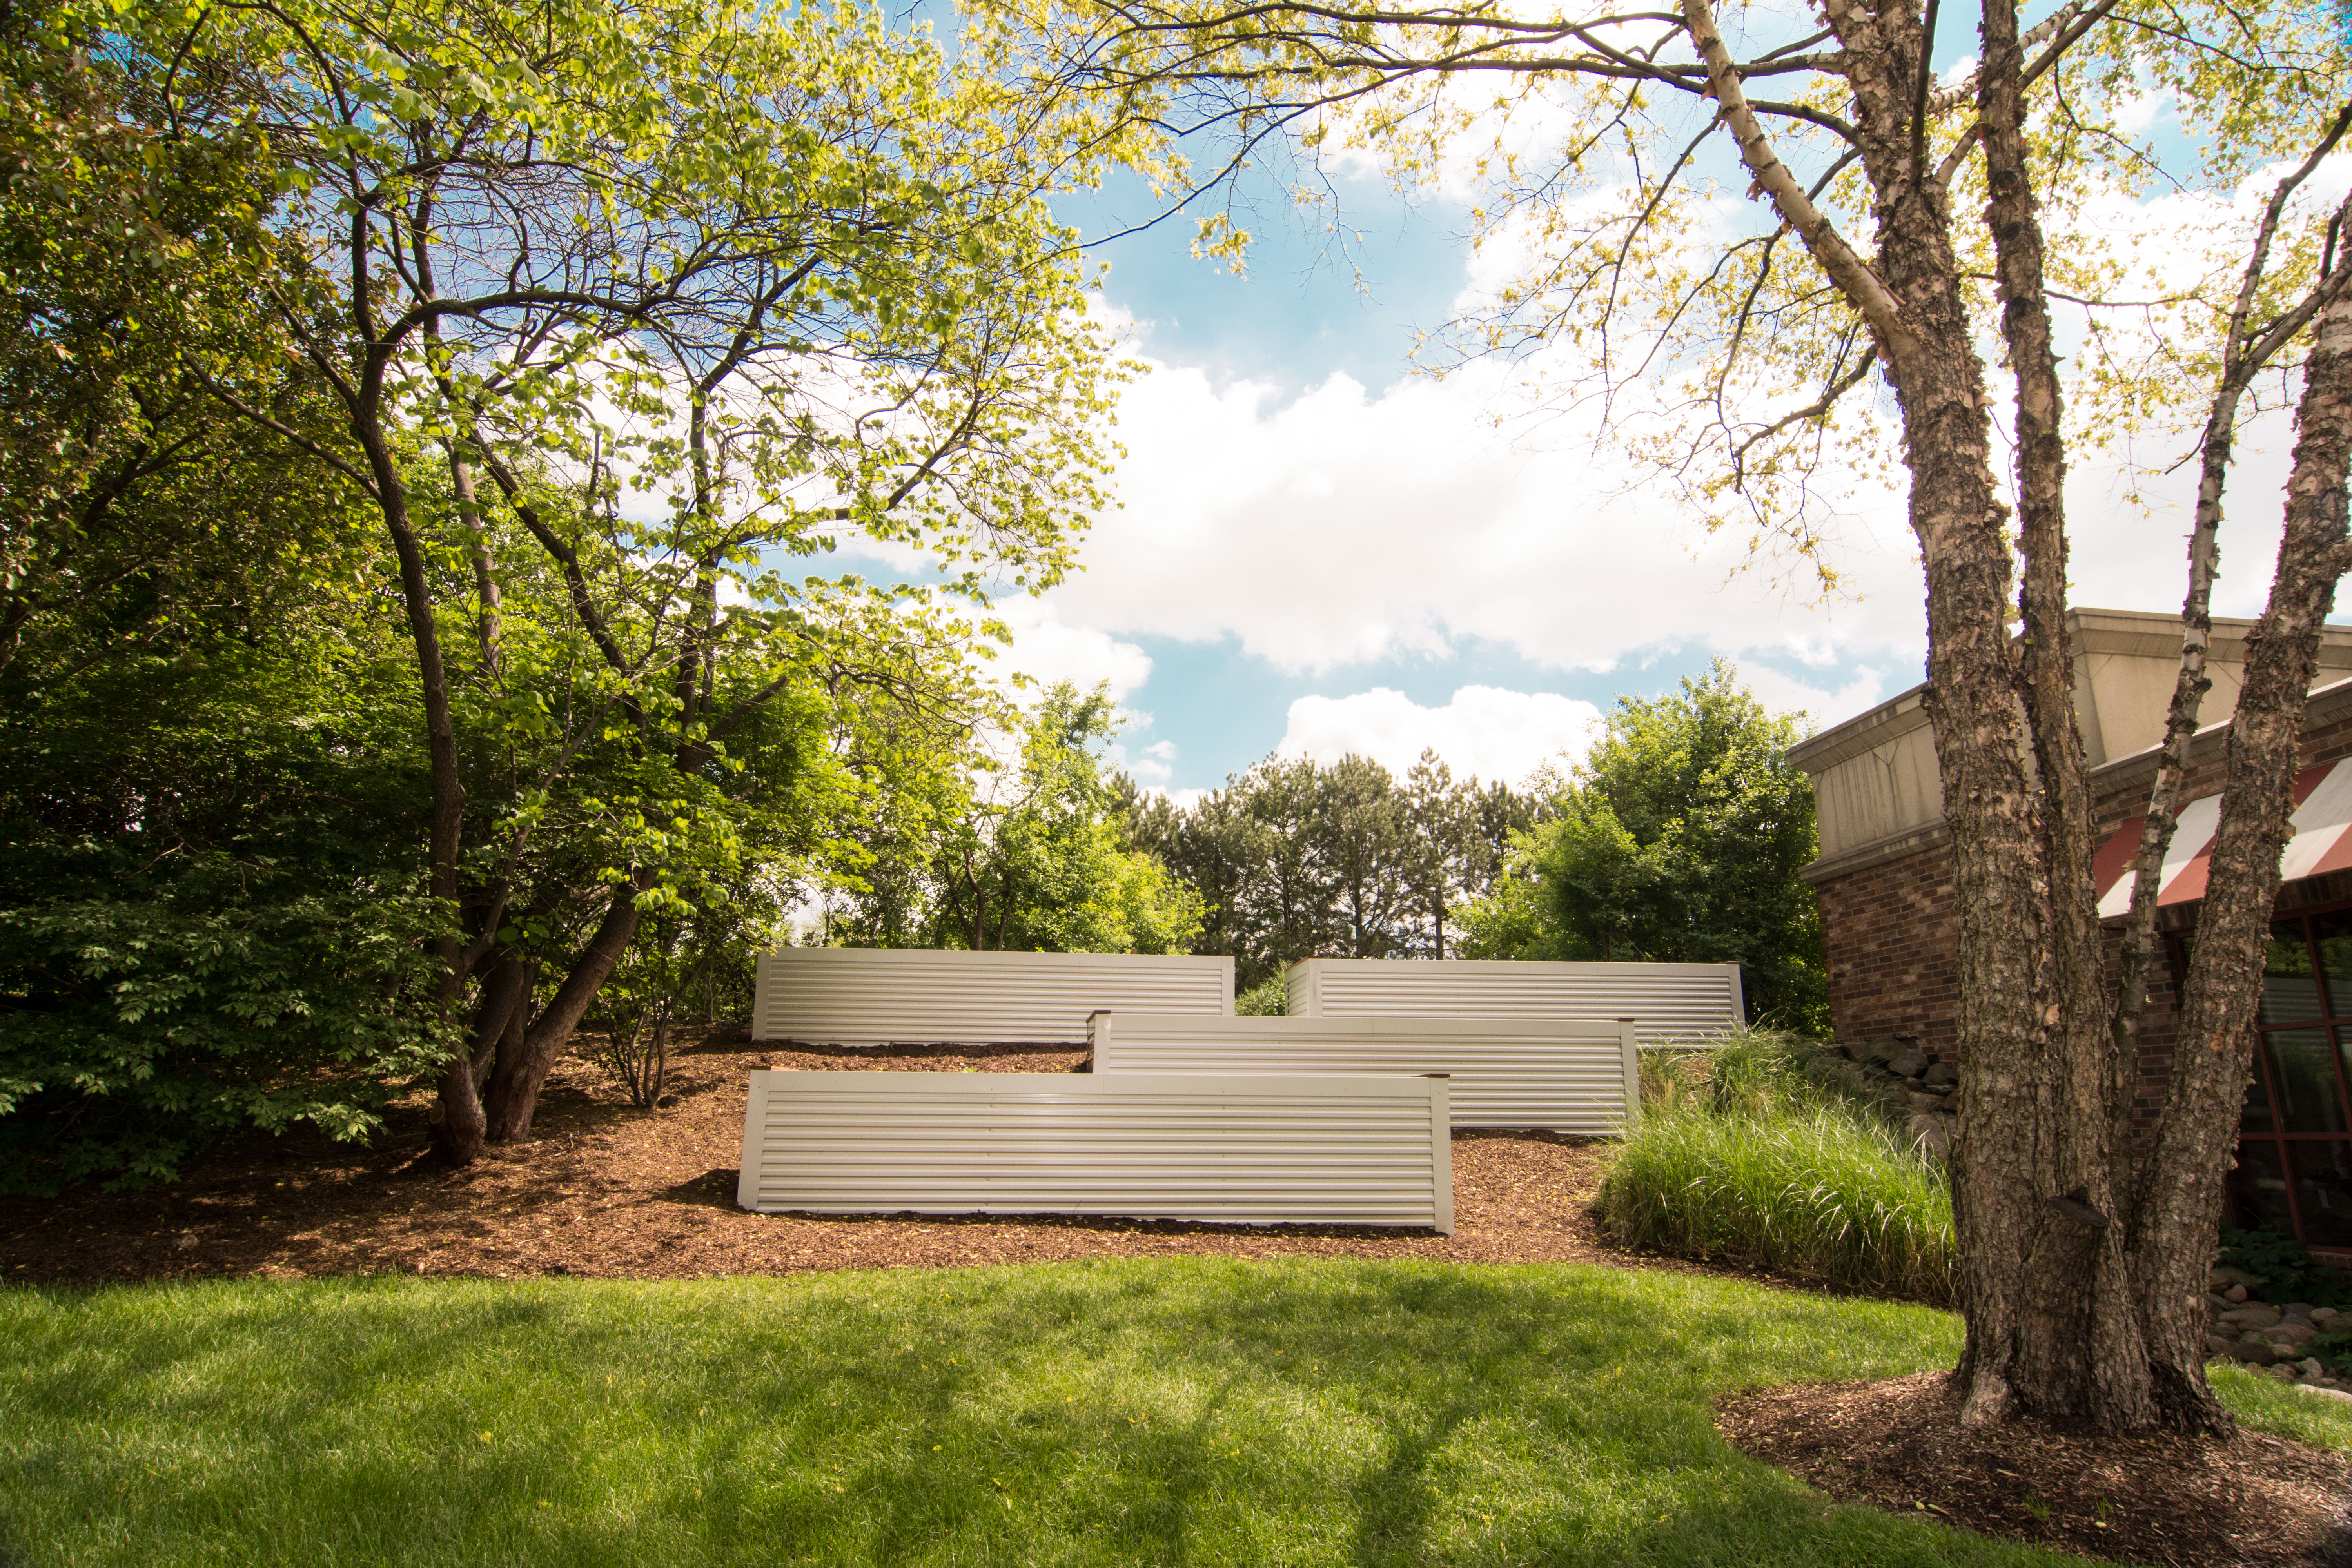 Birmingham's Big Rock Chophouse recently installed four large garden beds on their property.